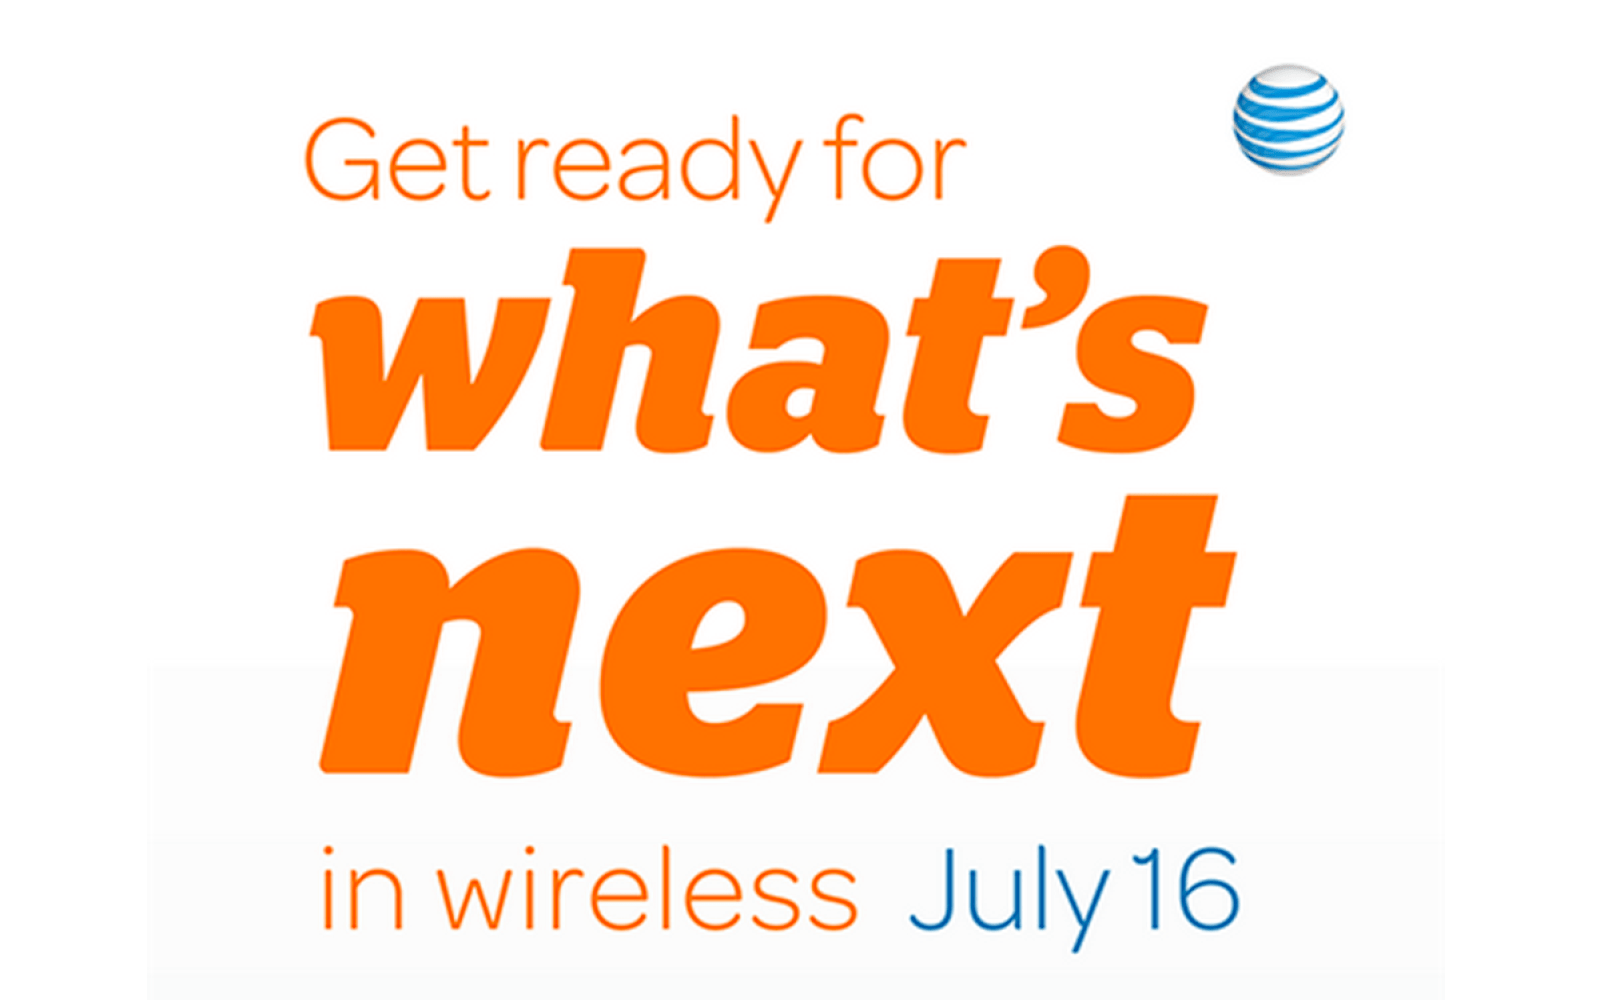 AT&T teases 'what's next in wireless' event on July 16.